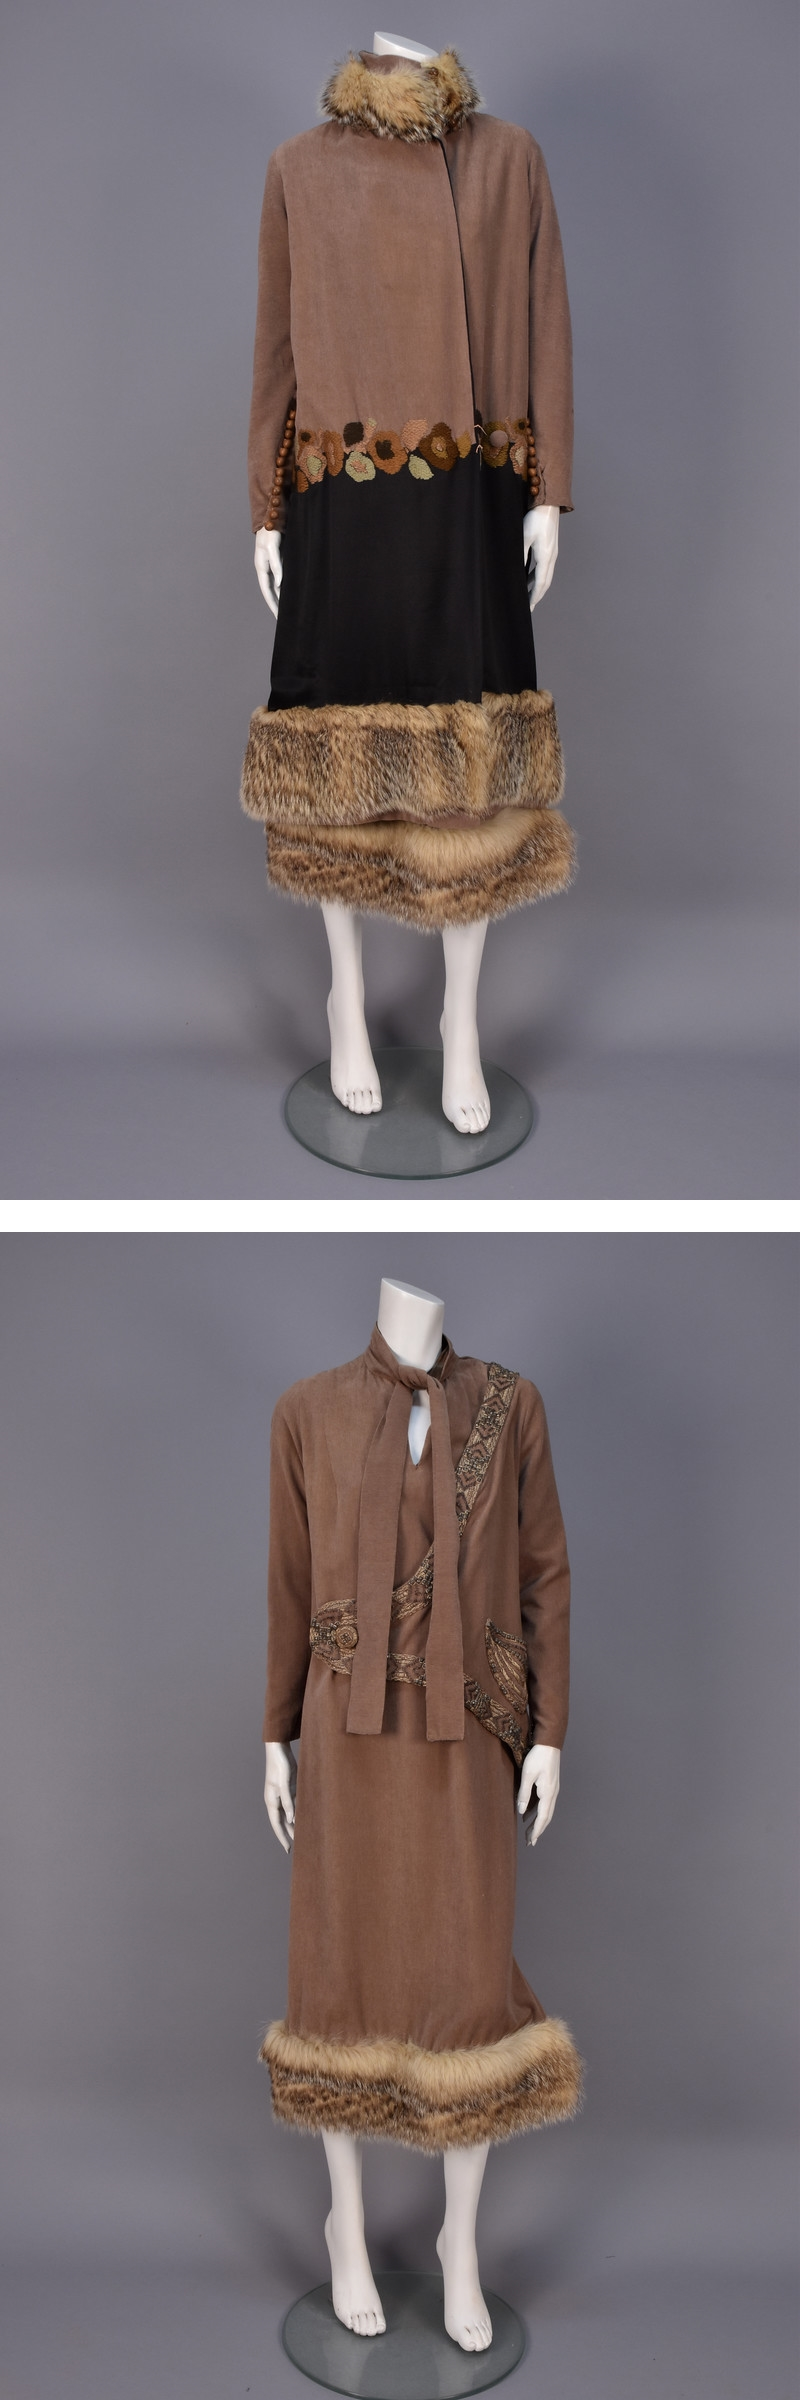 Embroidered Ensemble with Fur Trim, 1918-1919